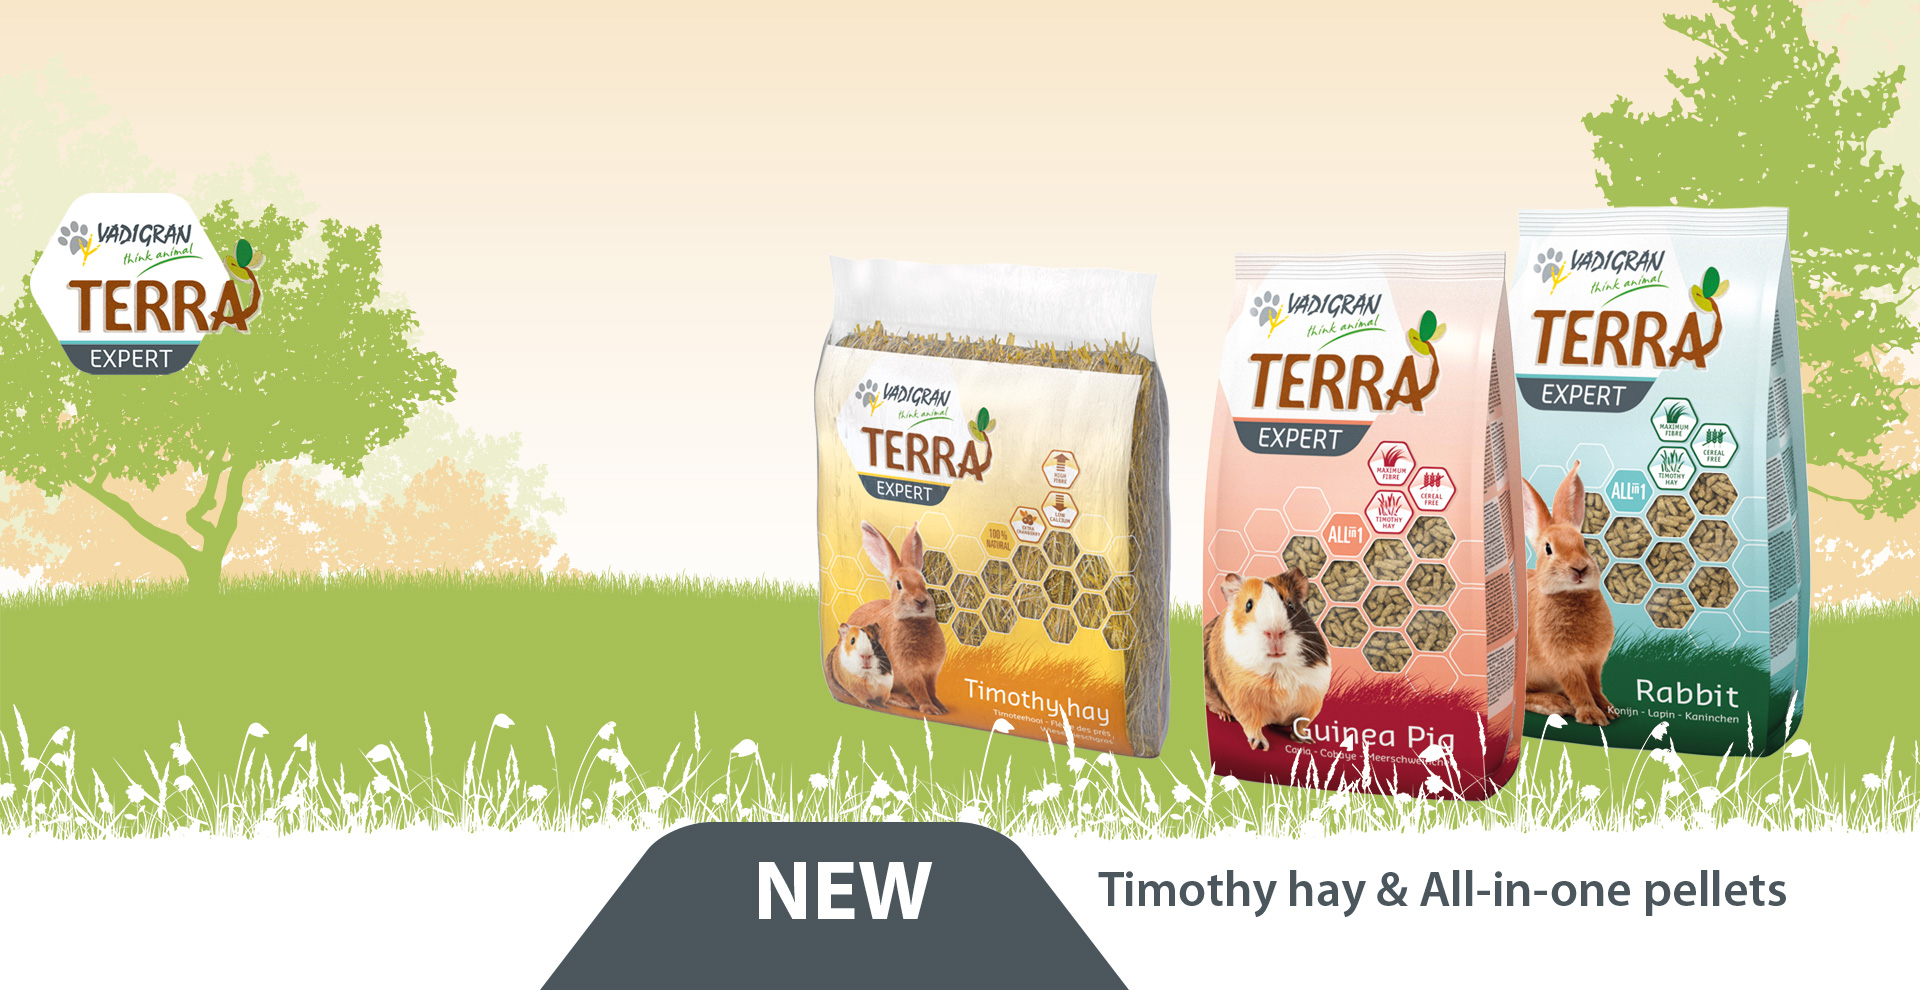 NEW IN THE TERRA FAMILY!